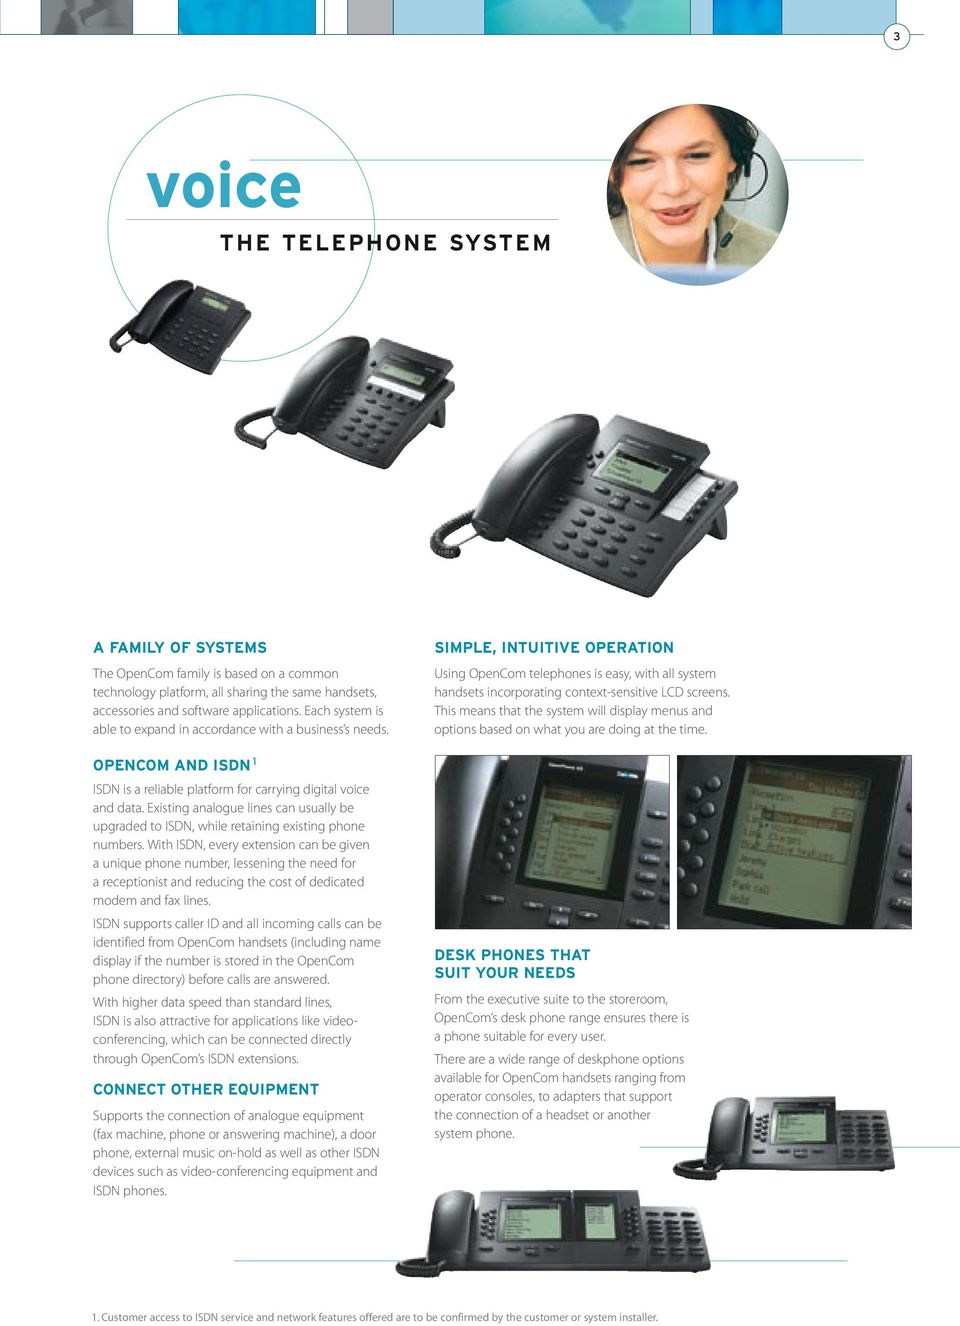 Existing analogue lines can usually be upgraded to ISDN, while retaining existing phone numbers.